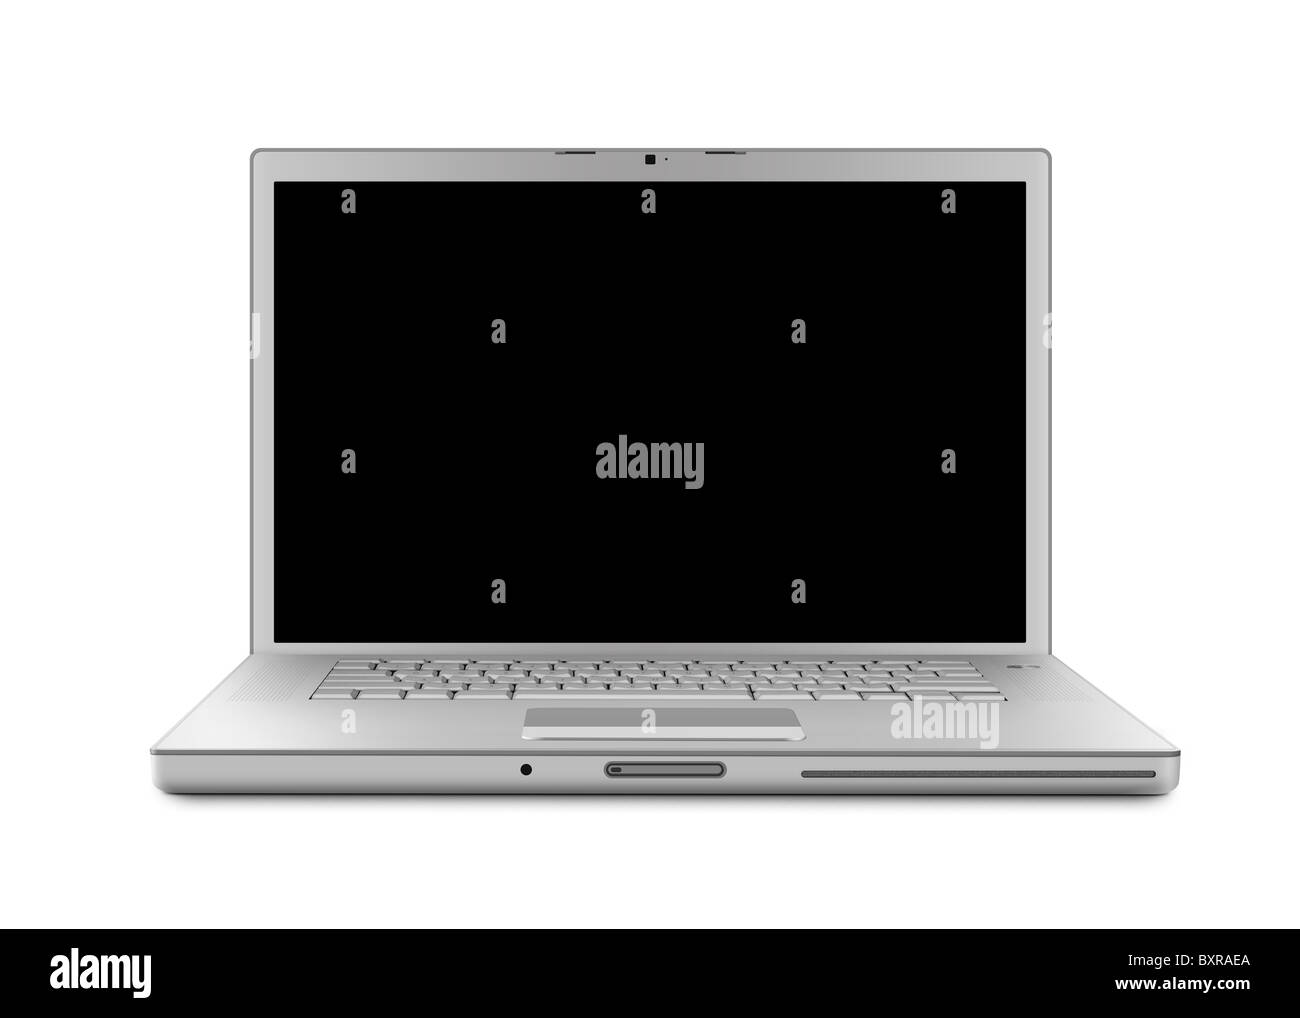 Laptop computer with clipping path. Isolated with a black screen on white background. - Stock Image